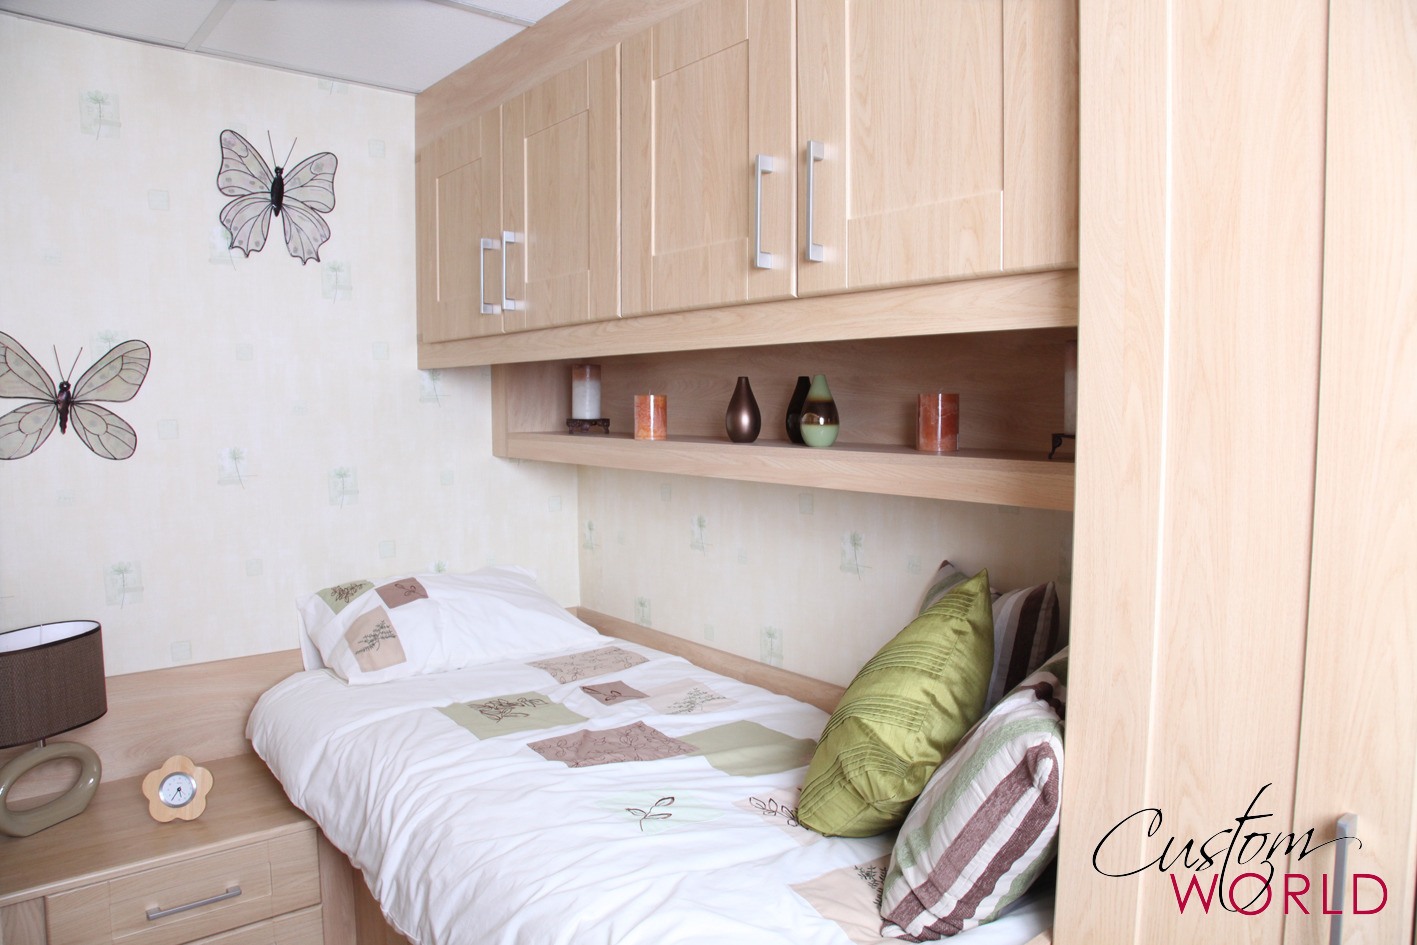 Custom made beds image gallery custom world bedrooms for Bedroom ideas with built in wardrobes